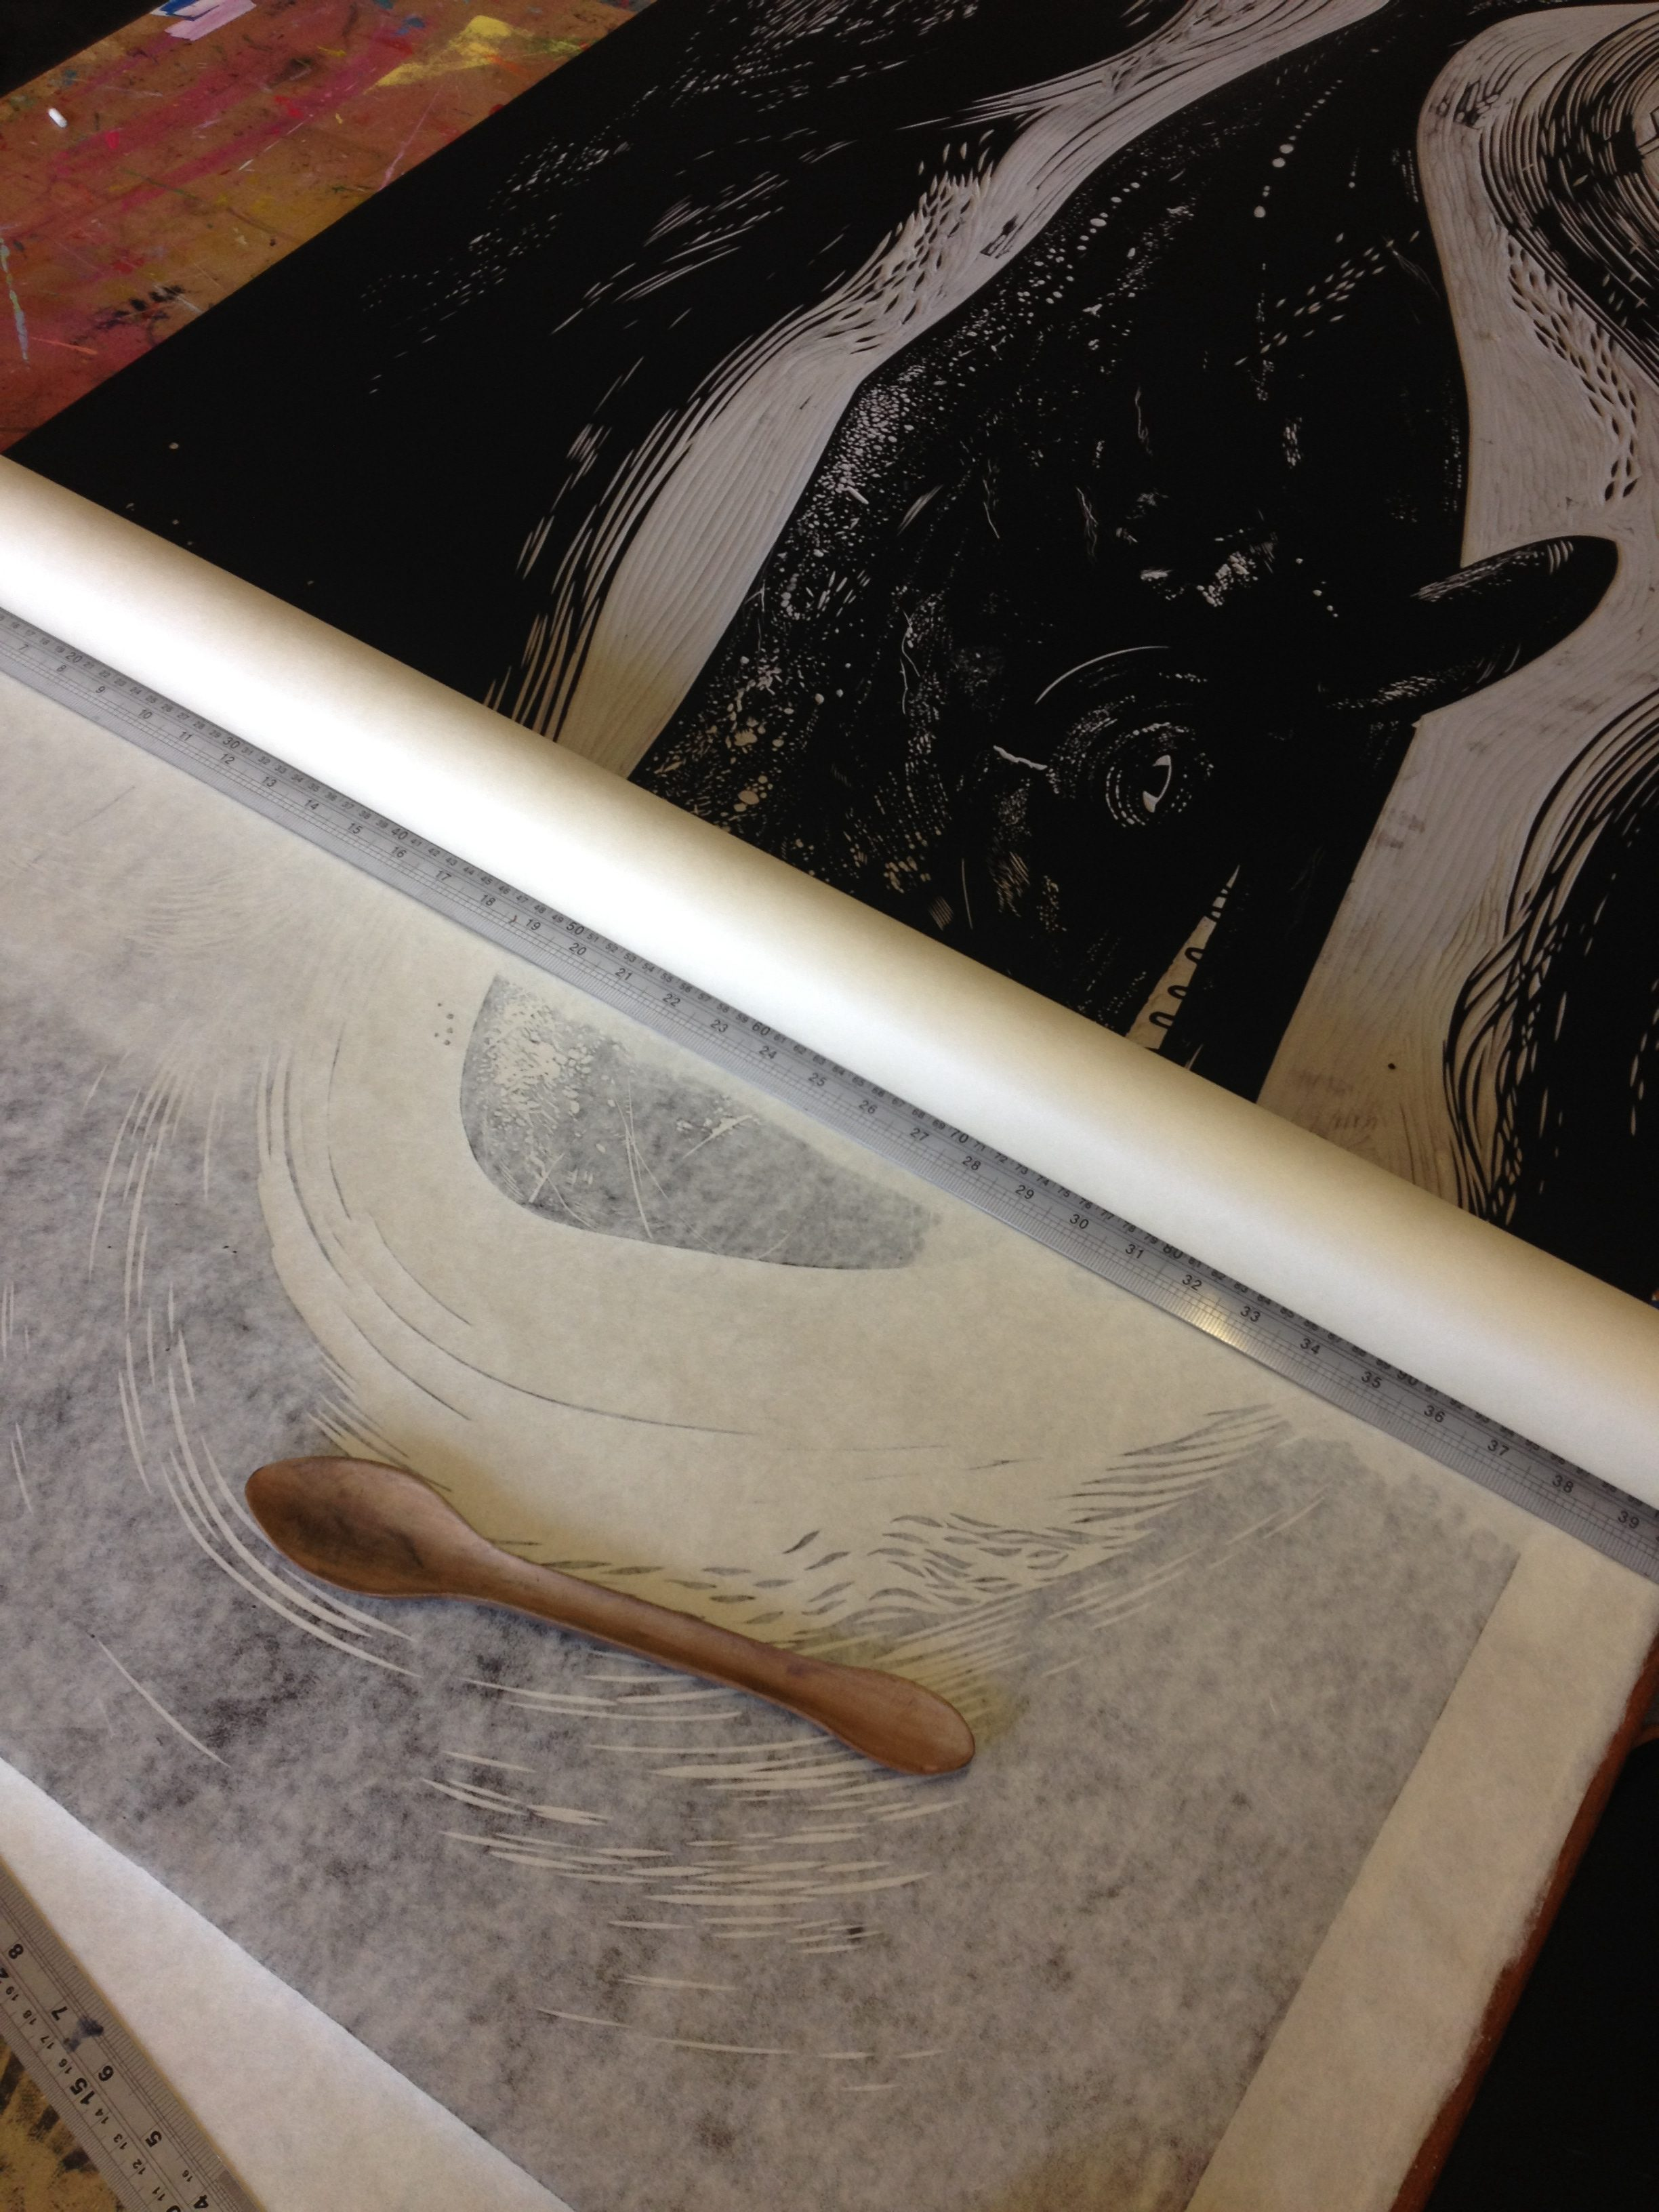 Hand printing linocut with a wooden spoon